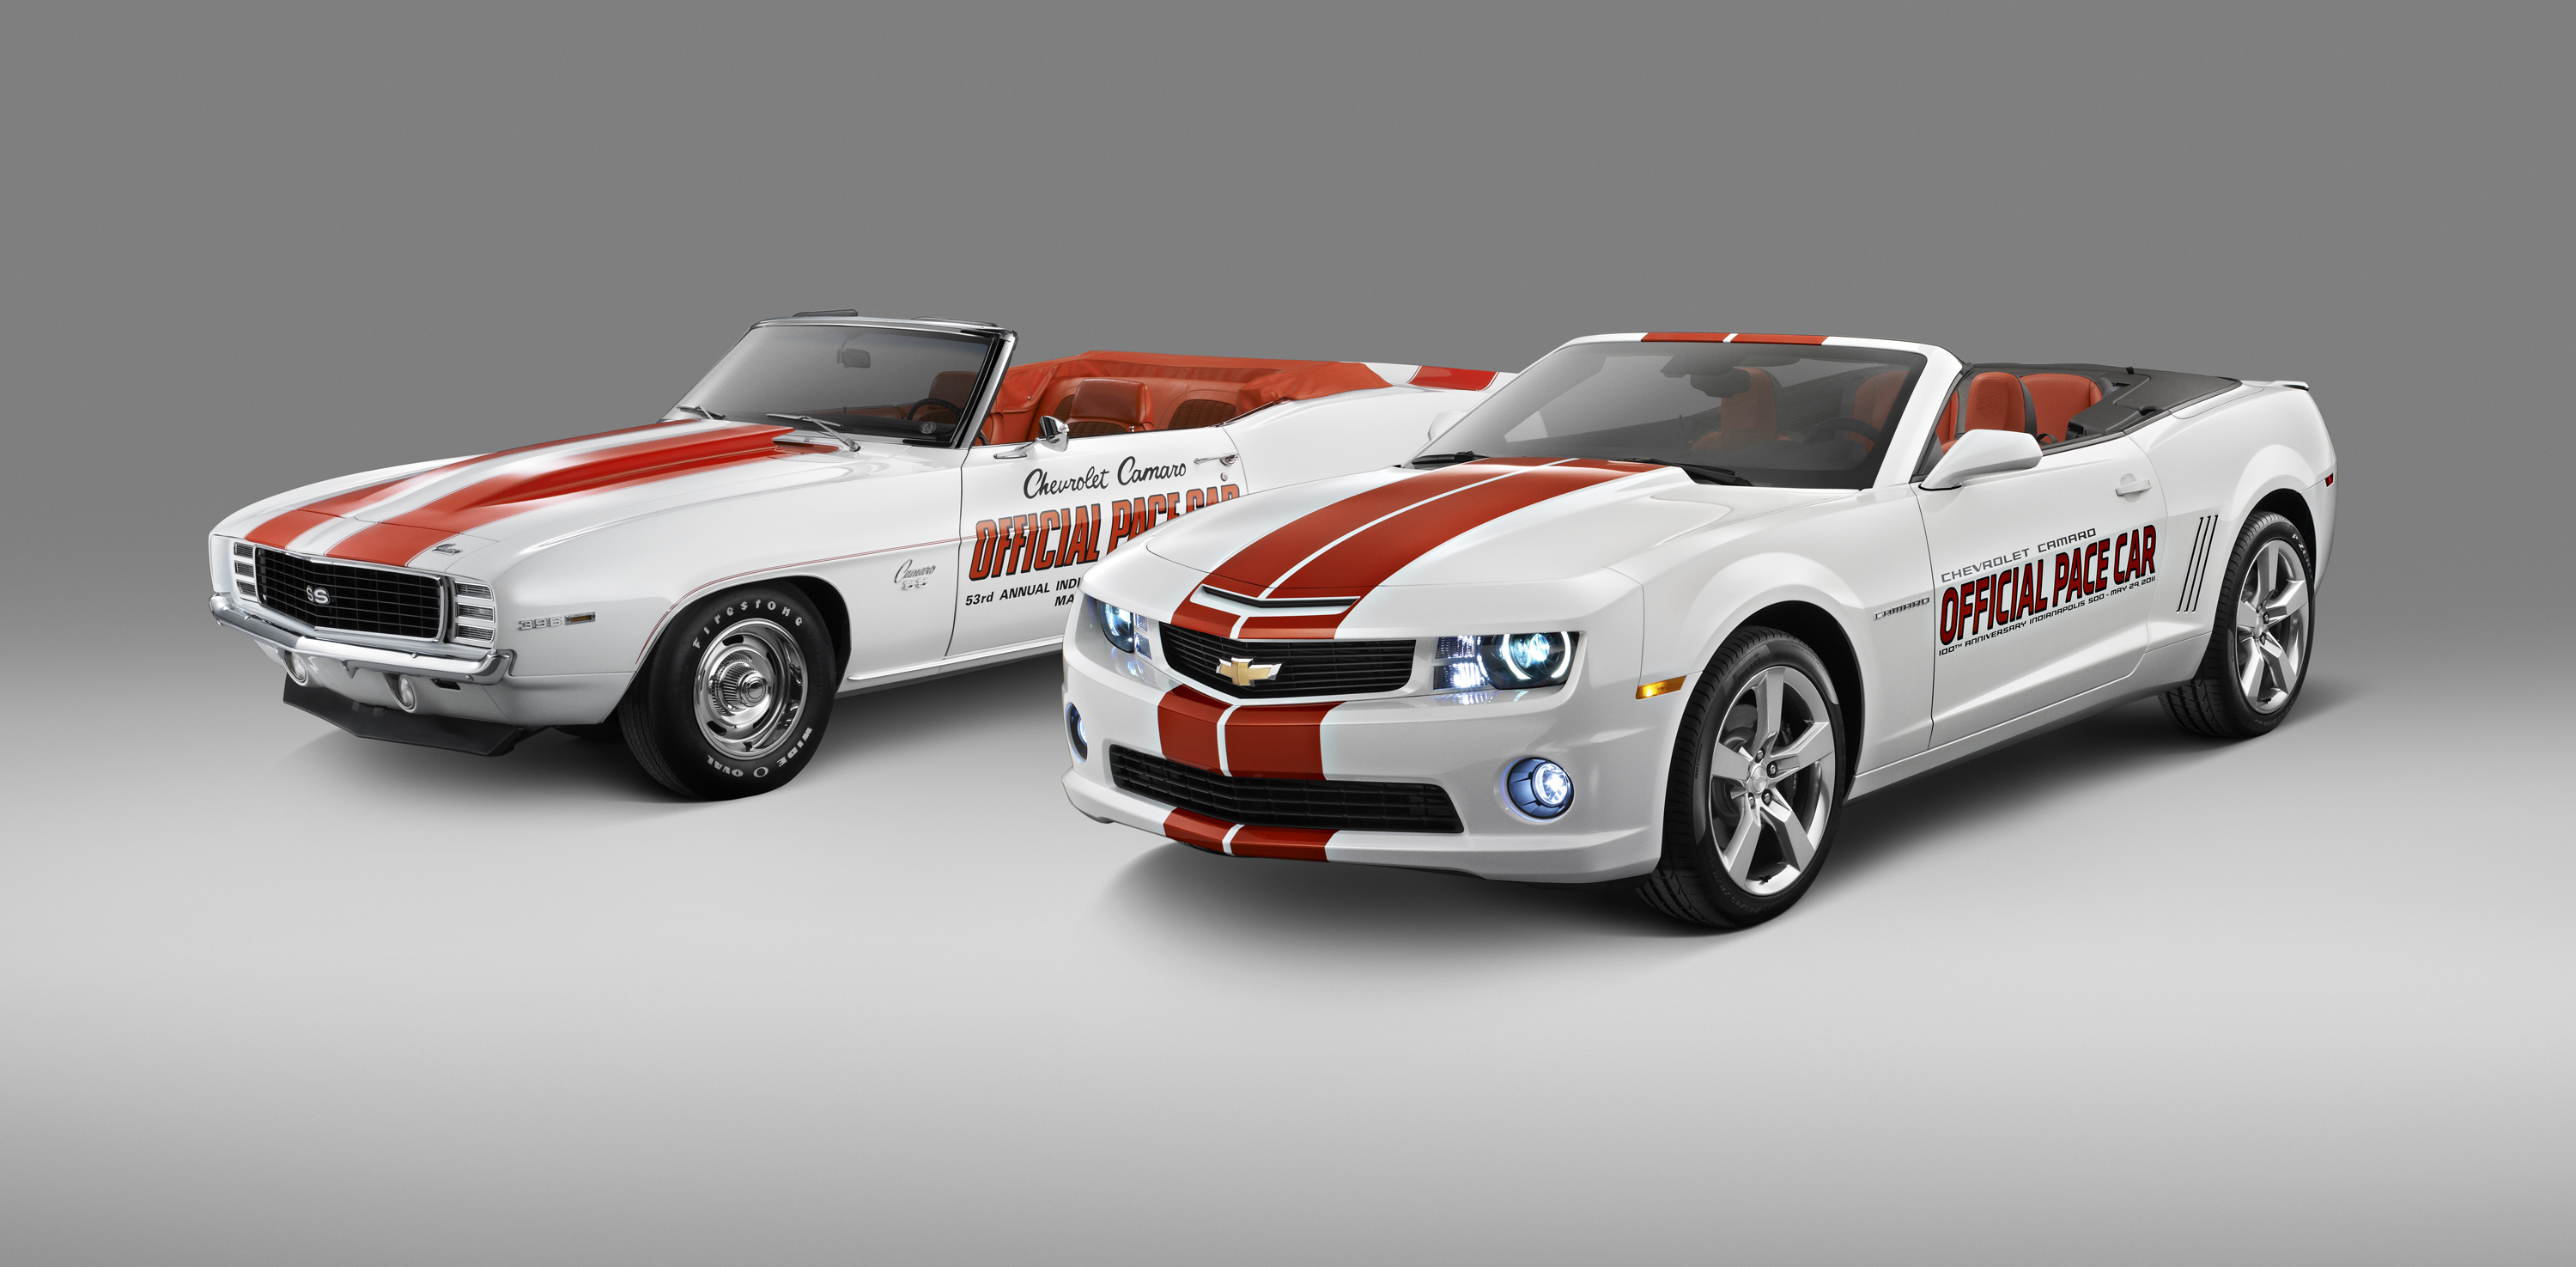 Chevrolet Camaro Convertible Official Pace Car of 2011 ...